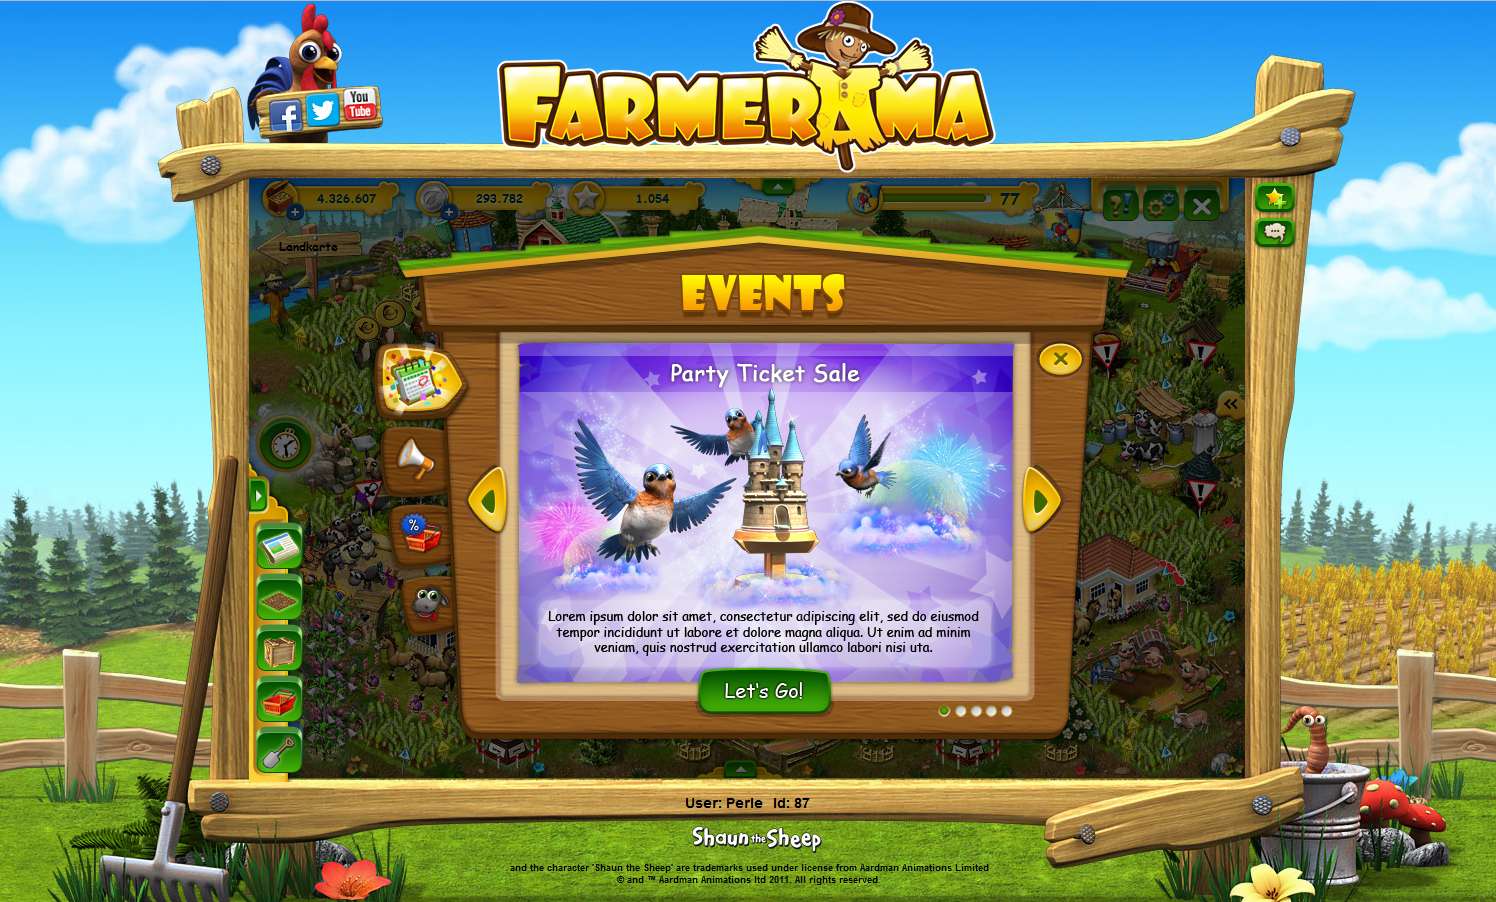 _farmwheel2015birdcastle_news_ui.jpg